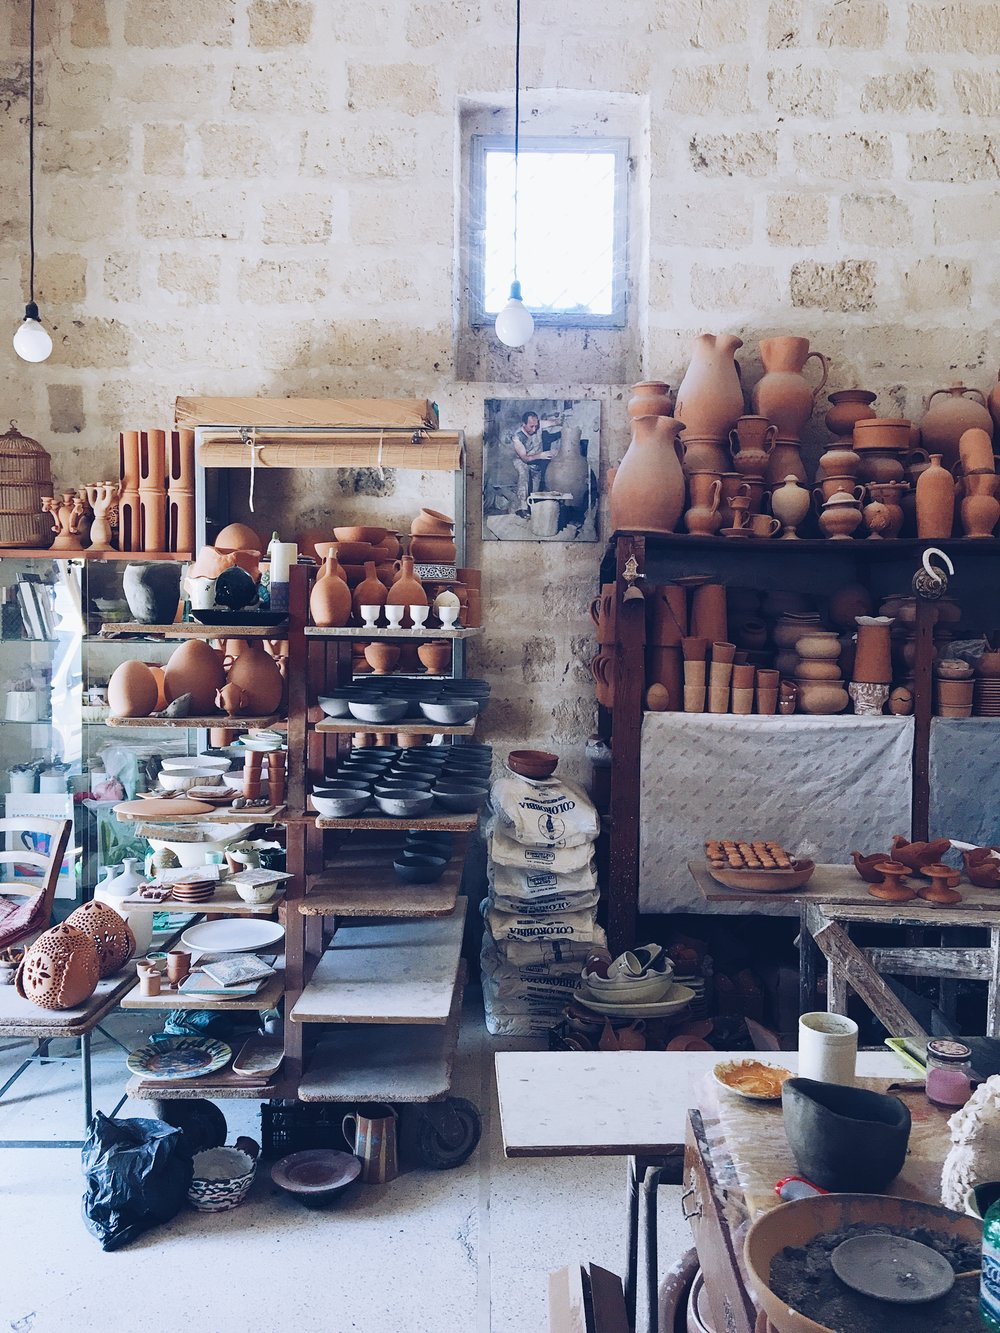 Ceramic studio in Grottaglie